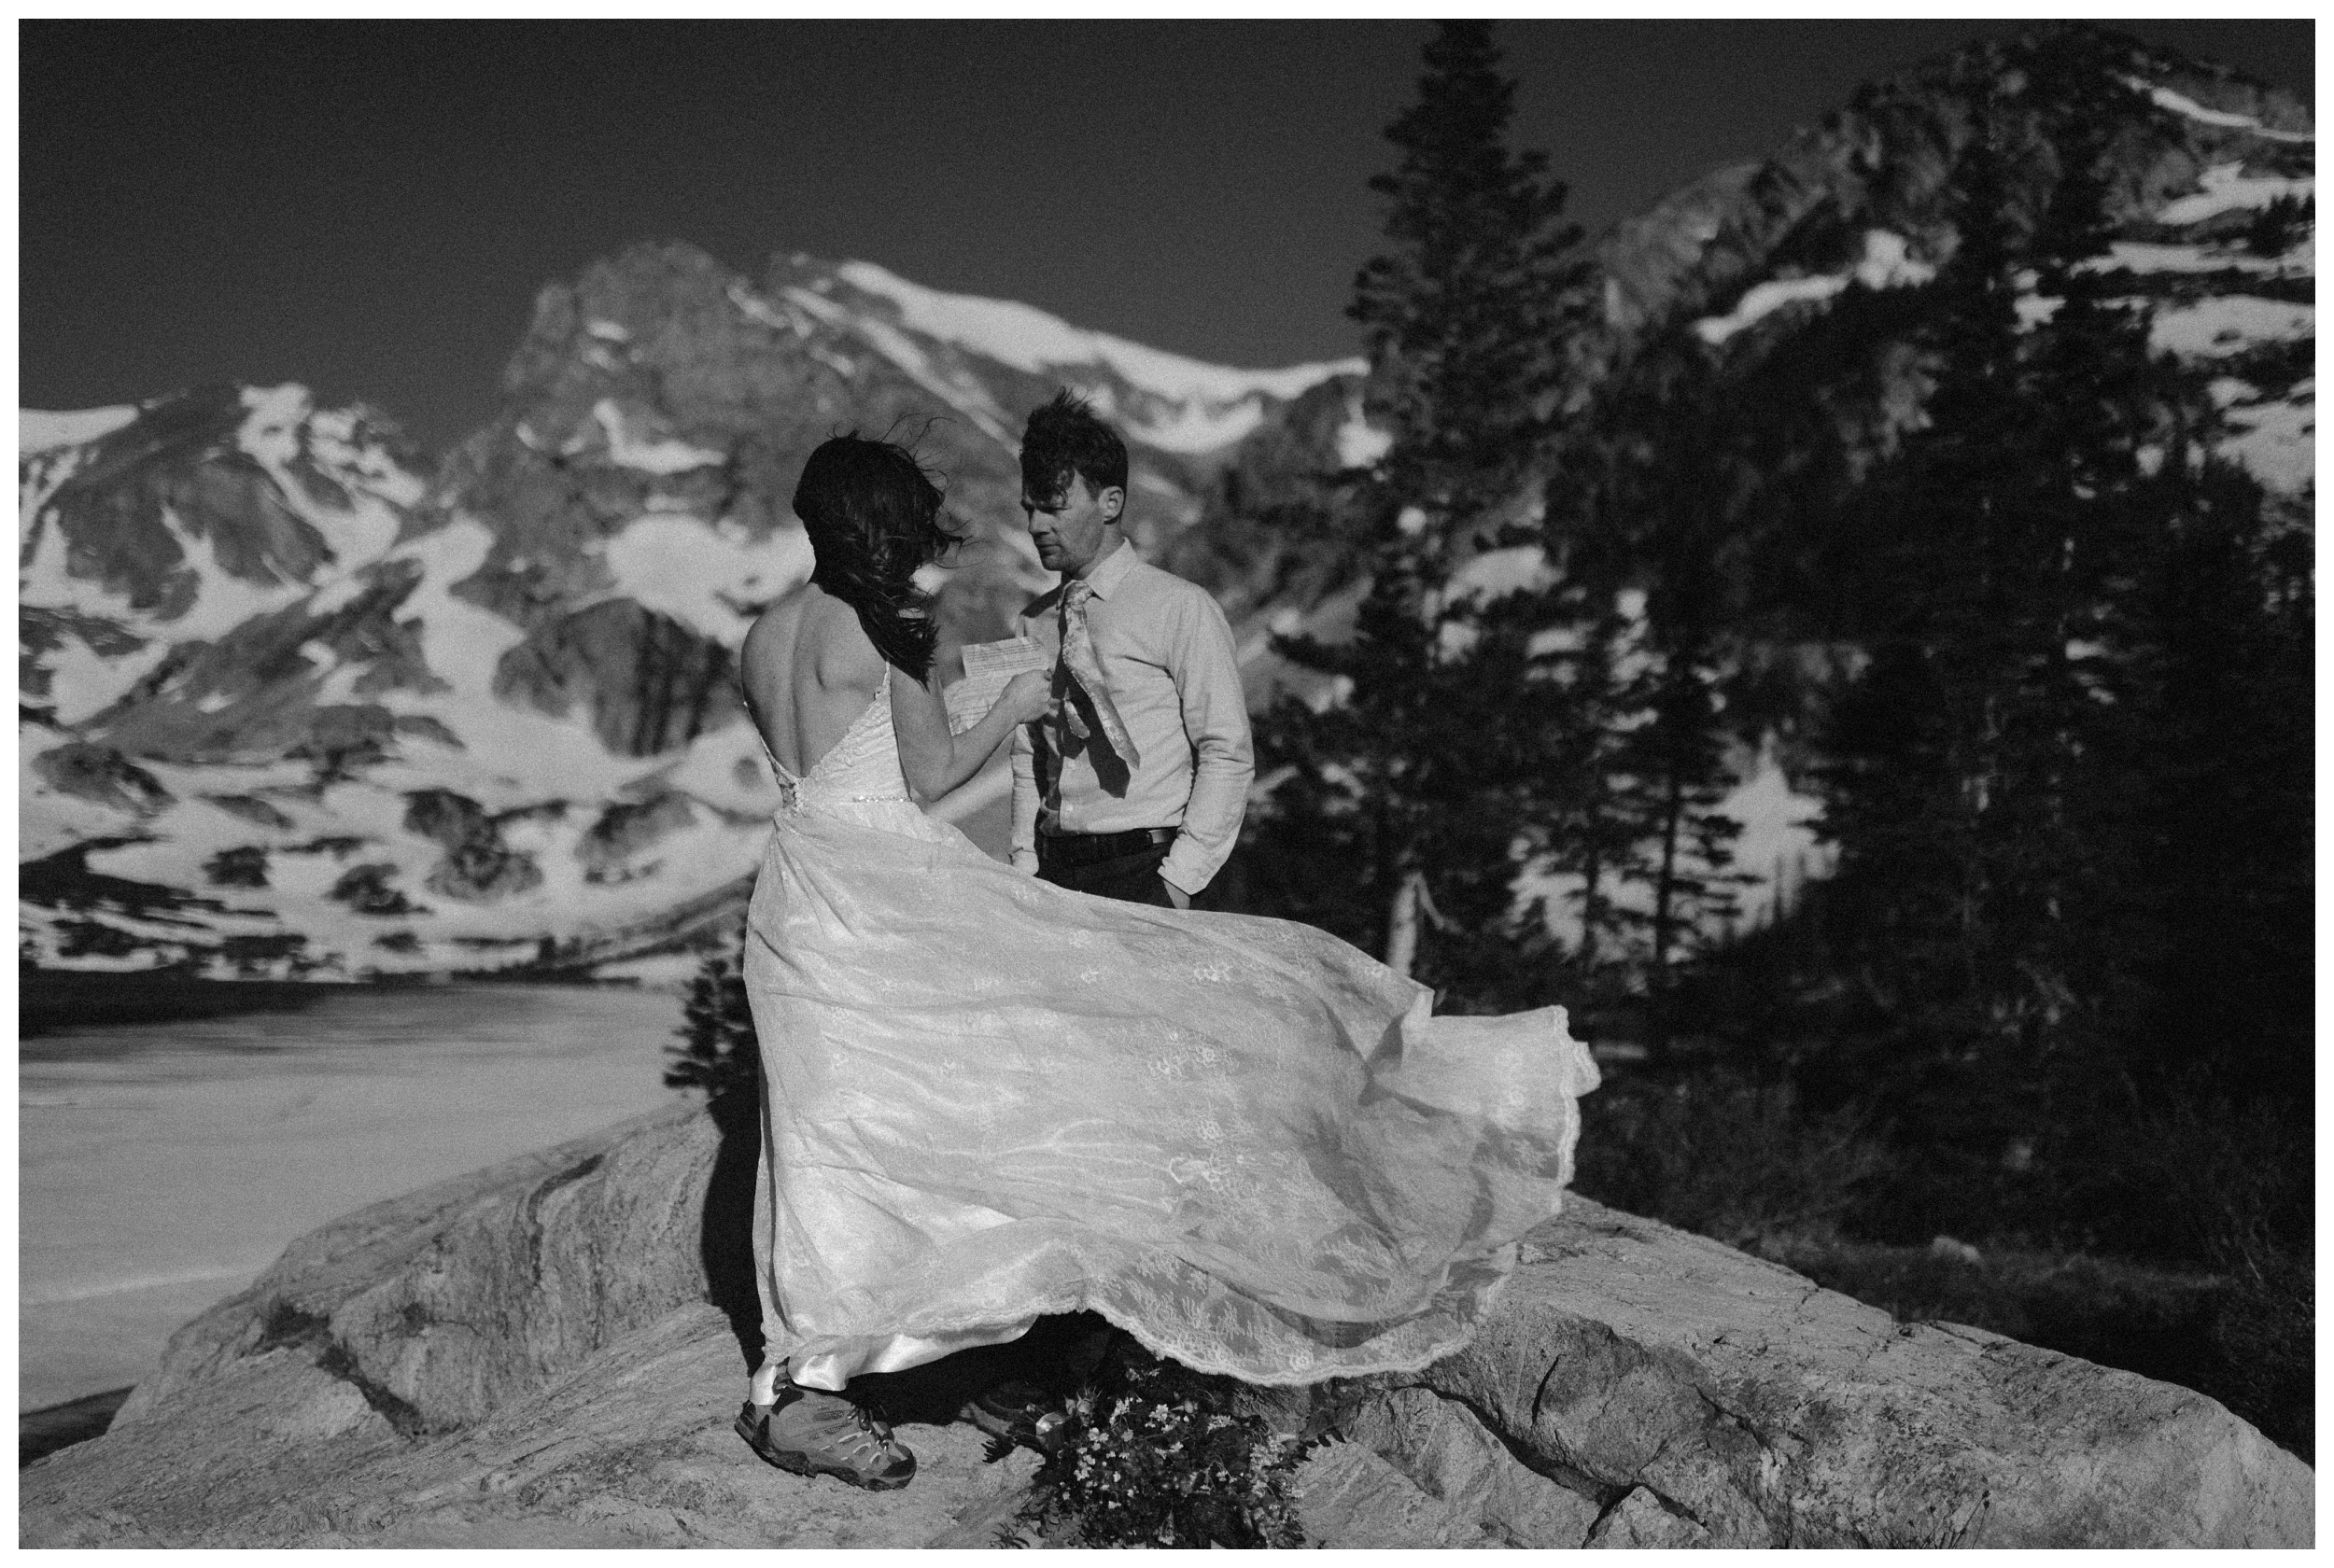 Karen's dress blows as she reads her vows during their self solemnizing elopement wedding ceremony at the top of Lake Isabelle in Nederland, Colorado. Photo by Adventure Instead, Maddie Mae.